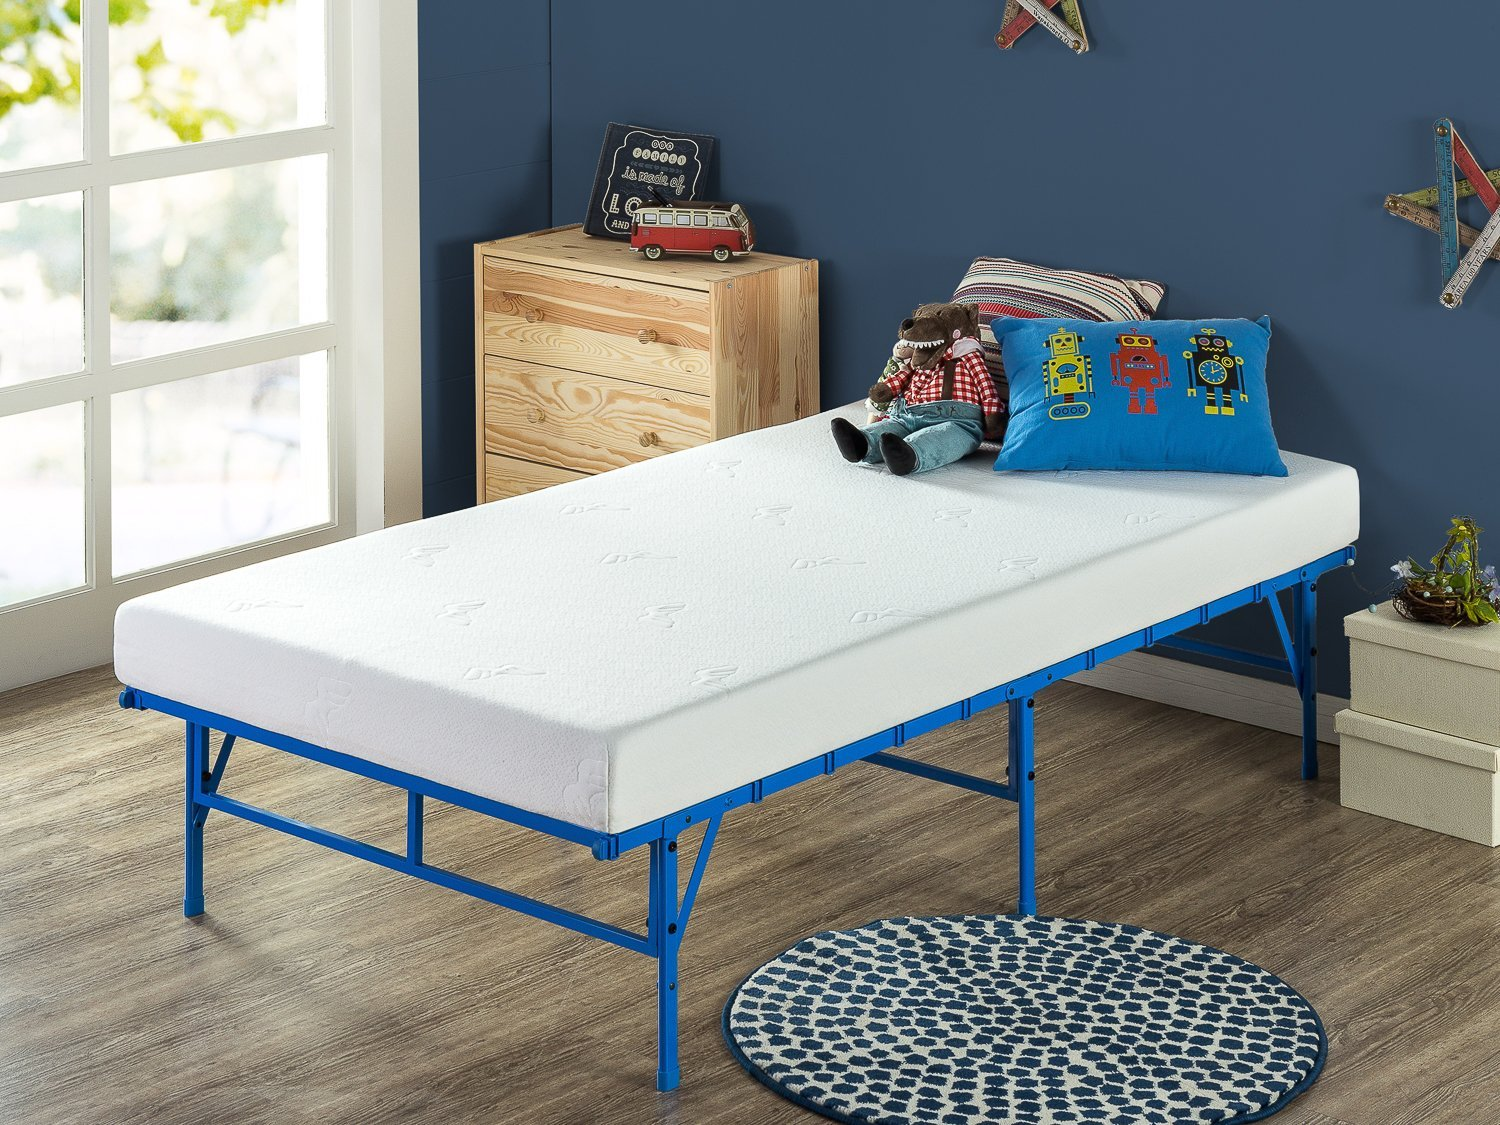 Zinus 5 Inch Memory Foam Mattress Set with Easy to Assemble SmartBase